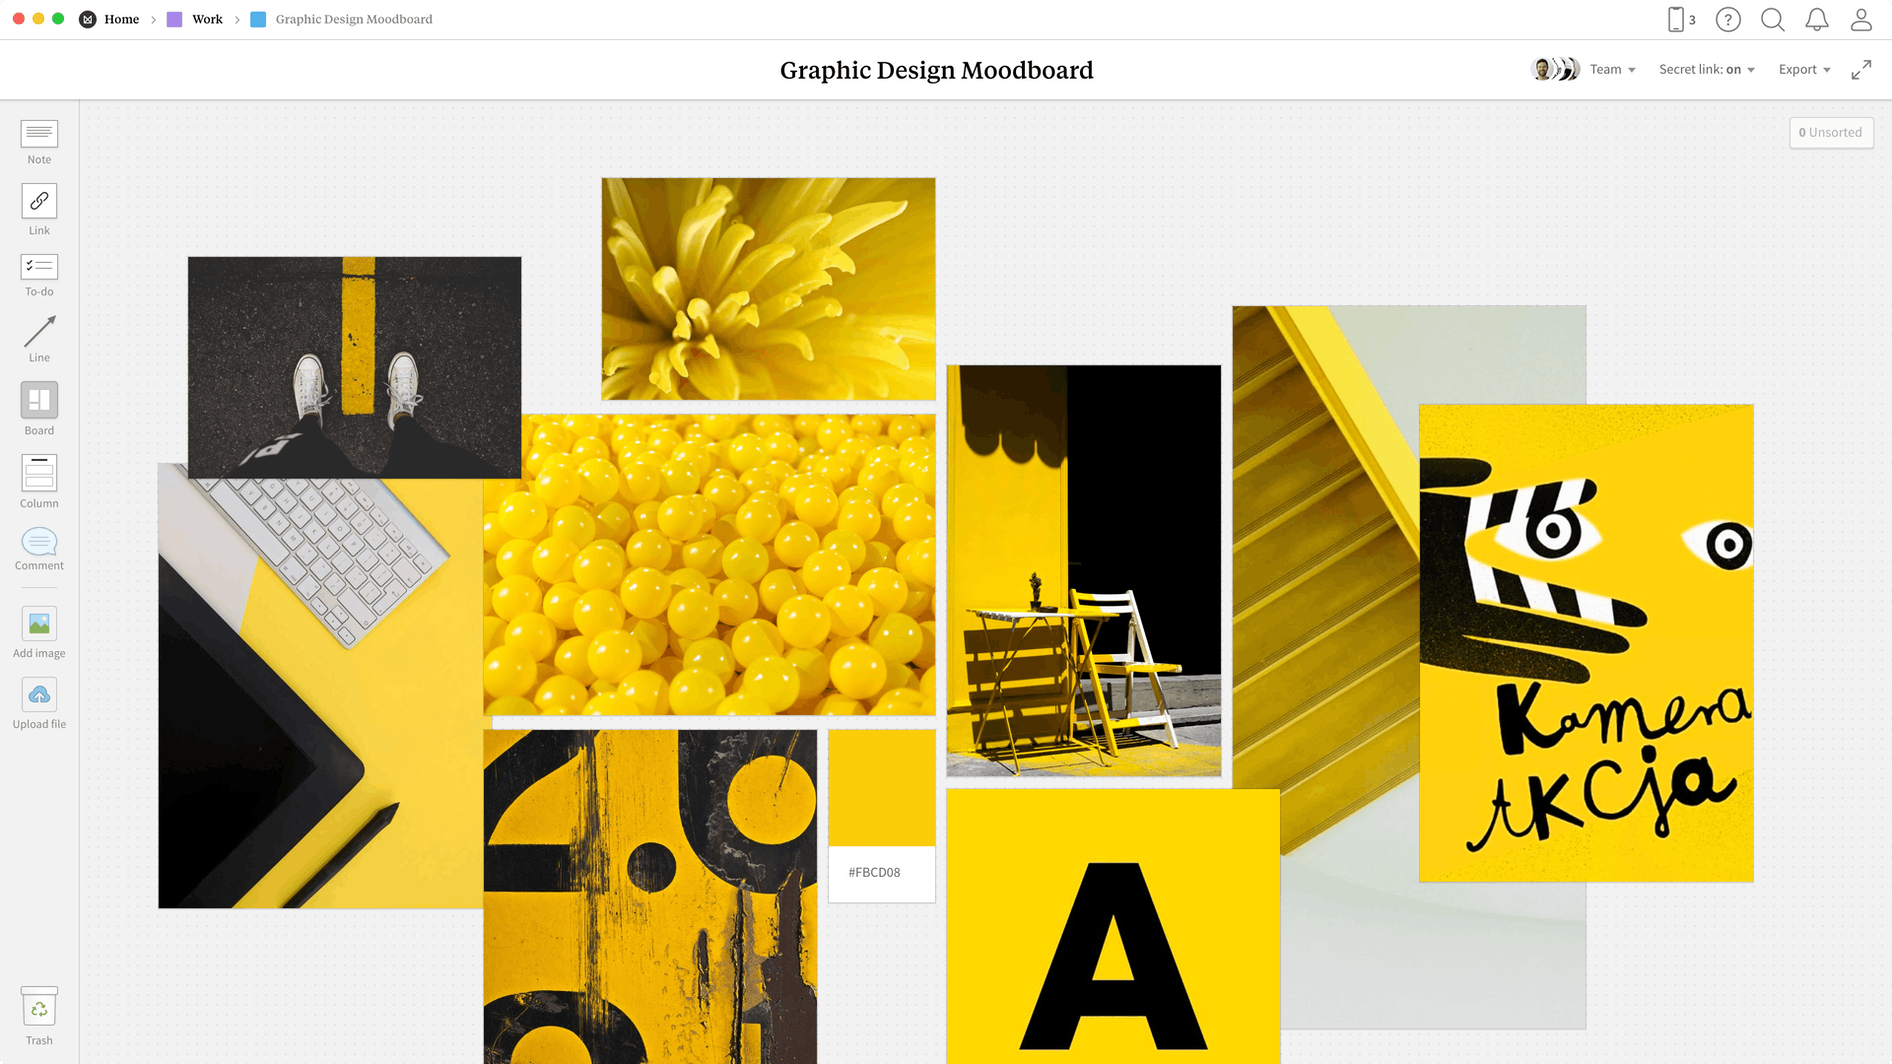 Graphic Design Moodboard Template, within the Milanote app